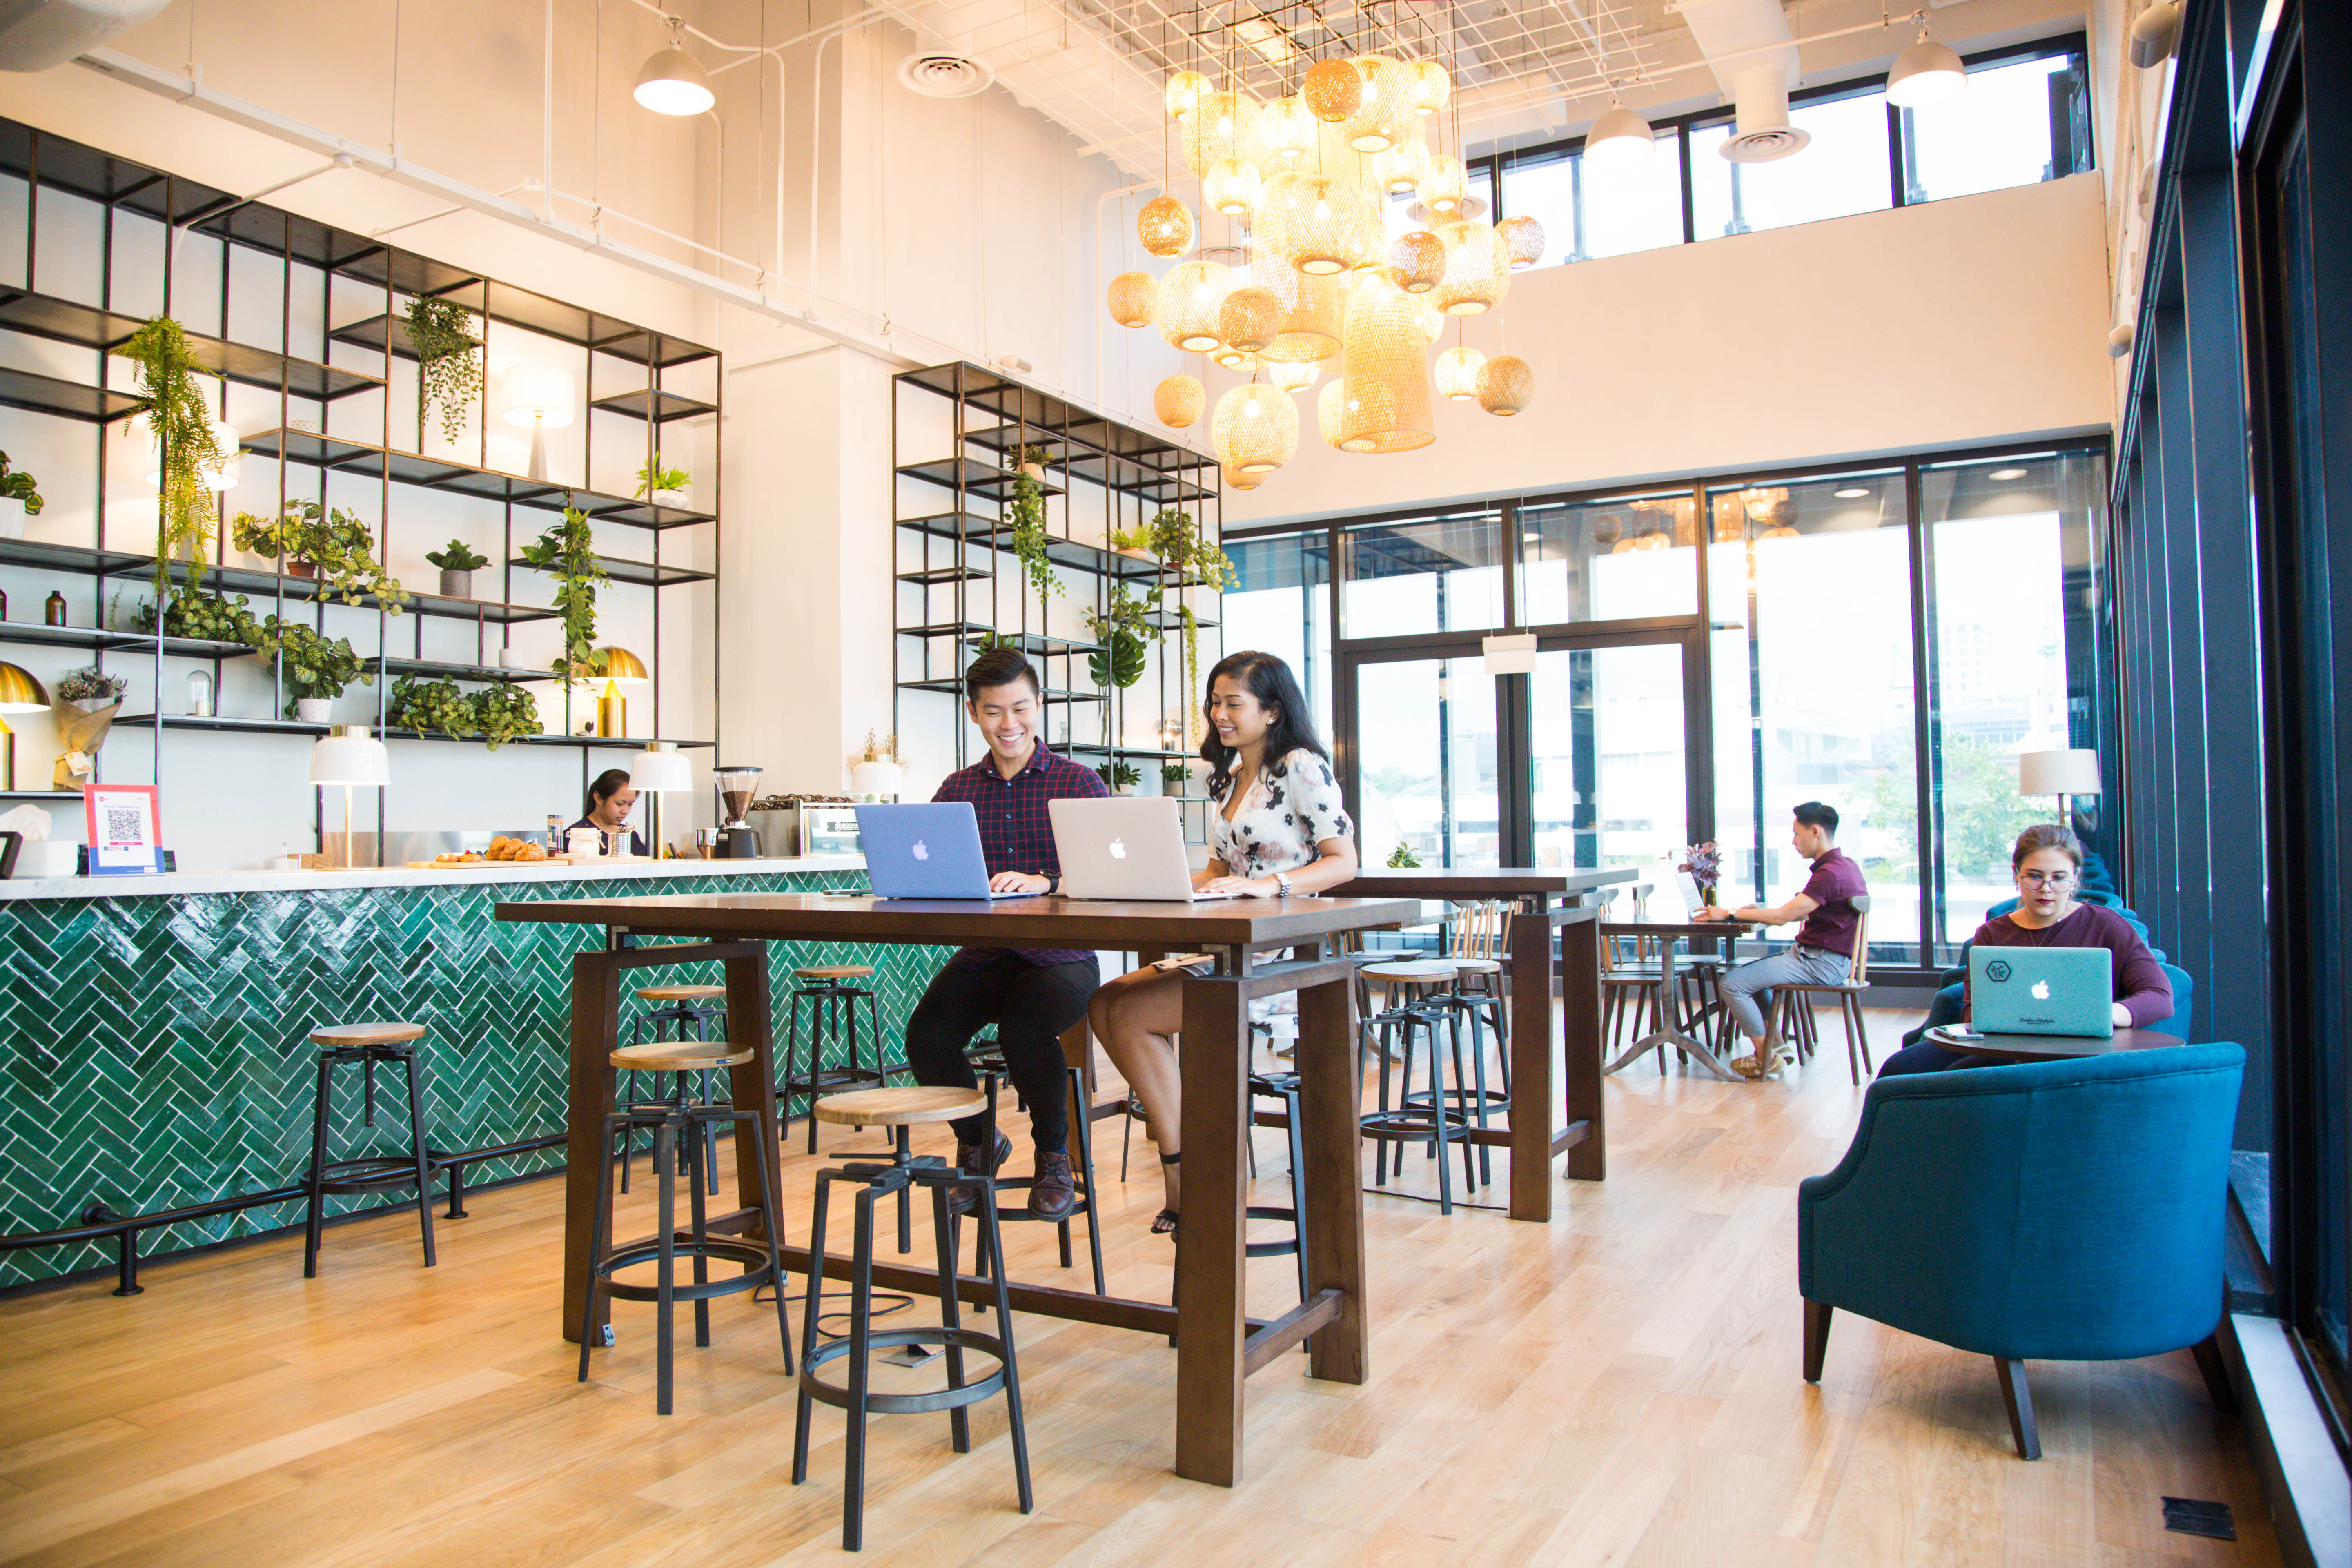 Coworking space Singapore The Hive